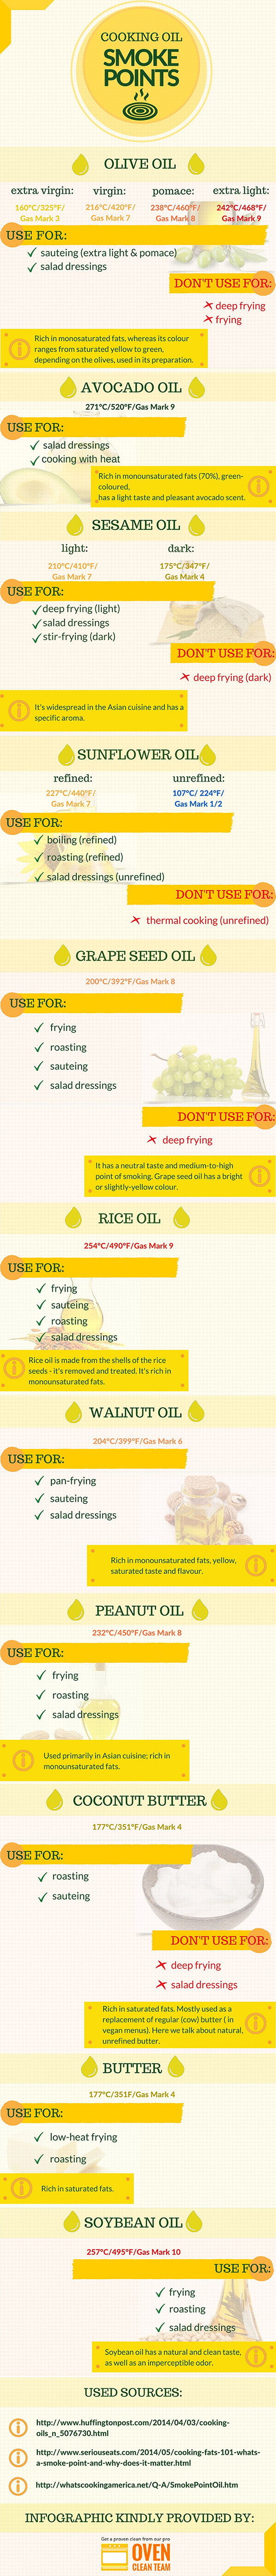 Cooking-Oil-smoke-points